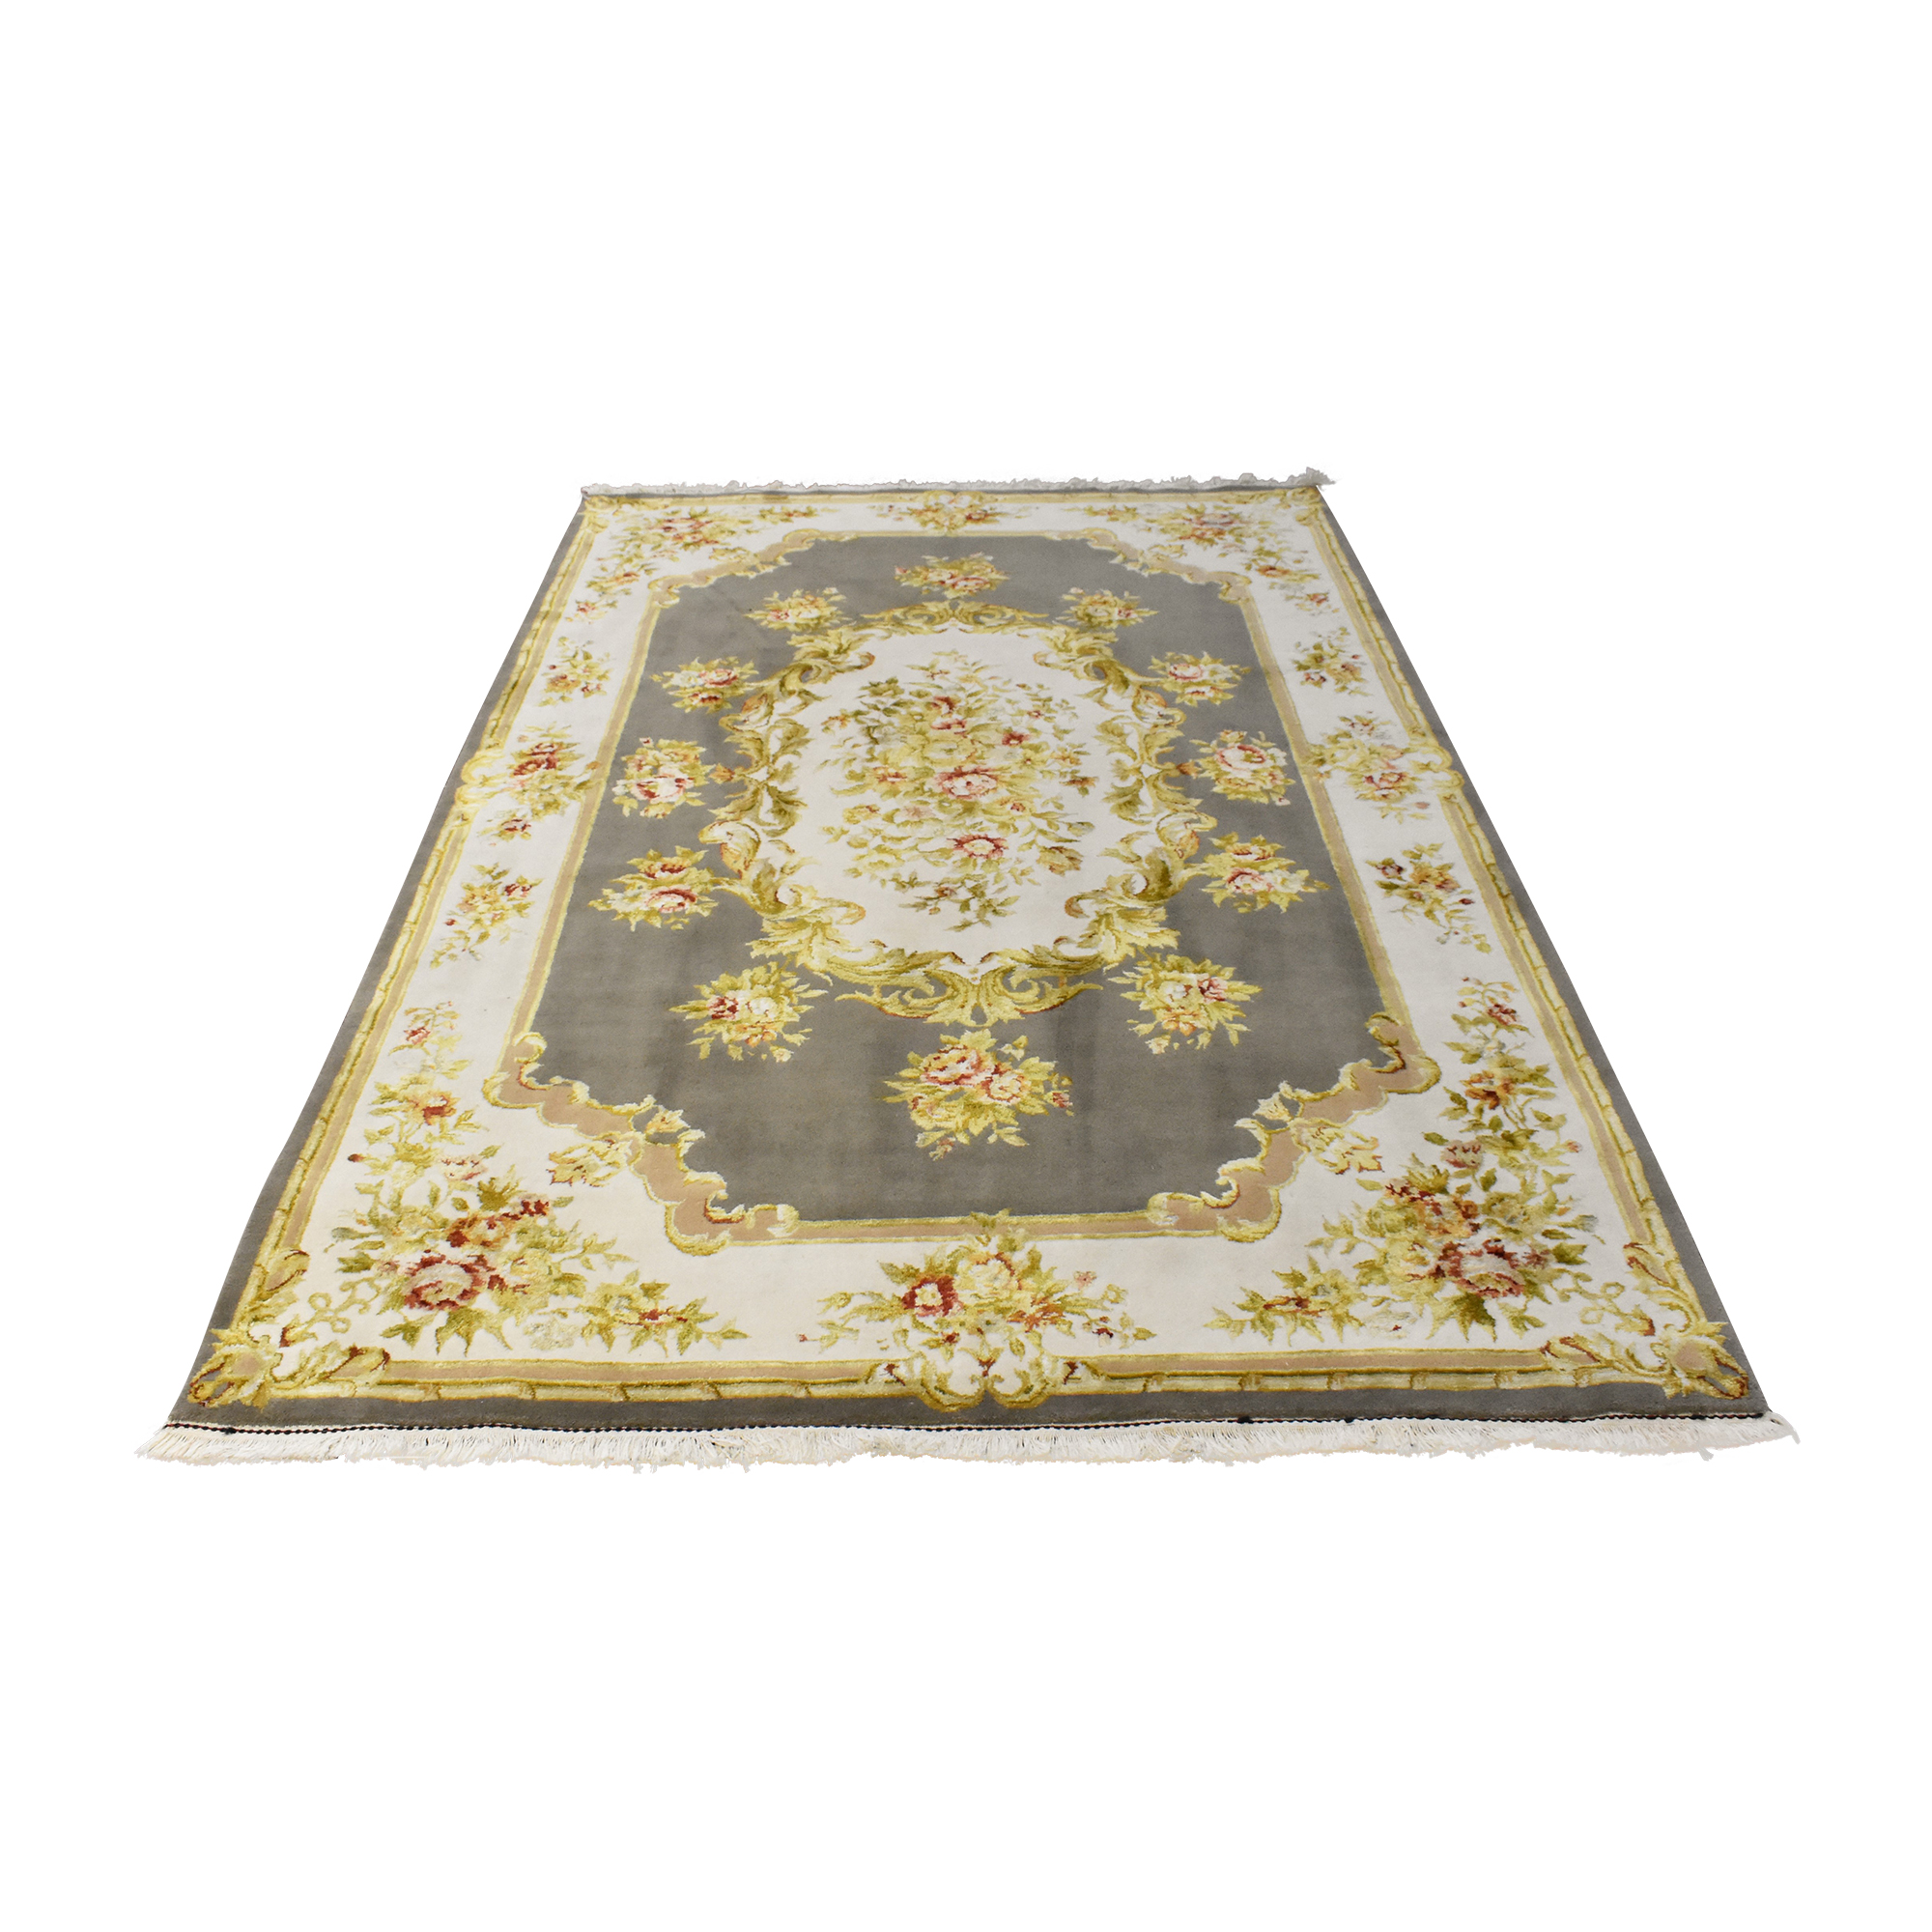 Floral Patterned Area Rug ma